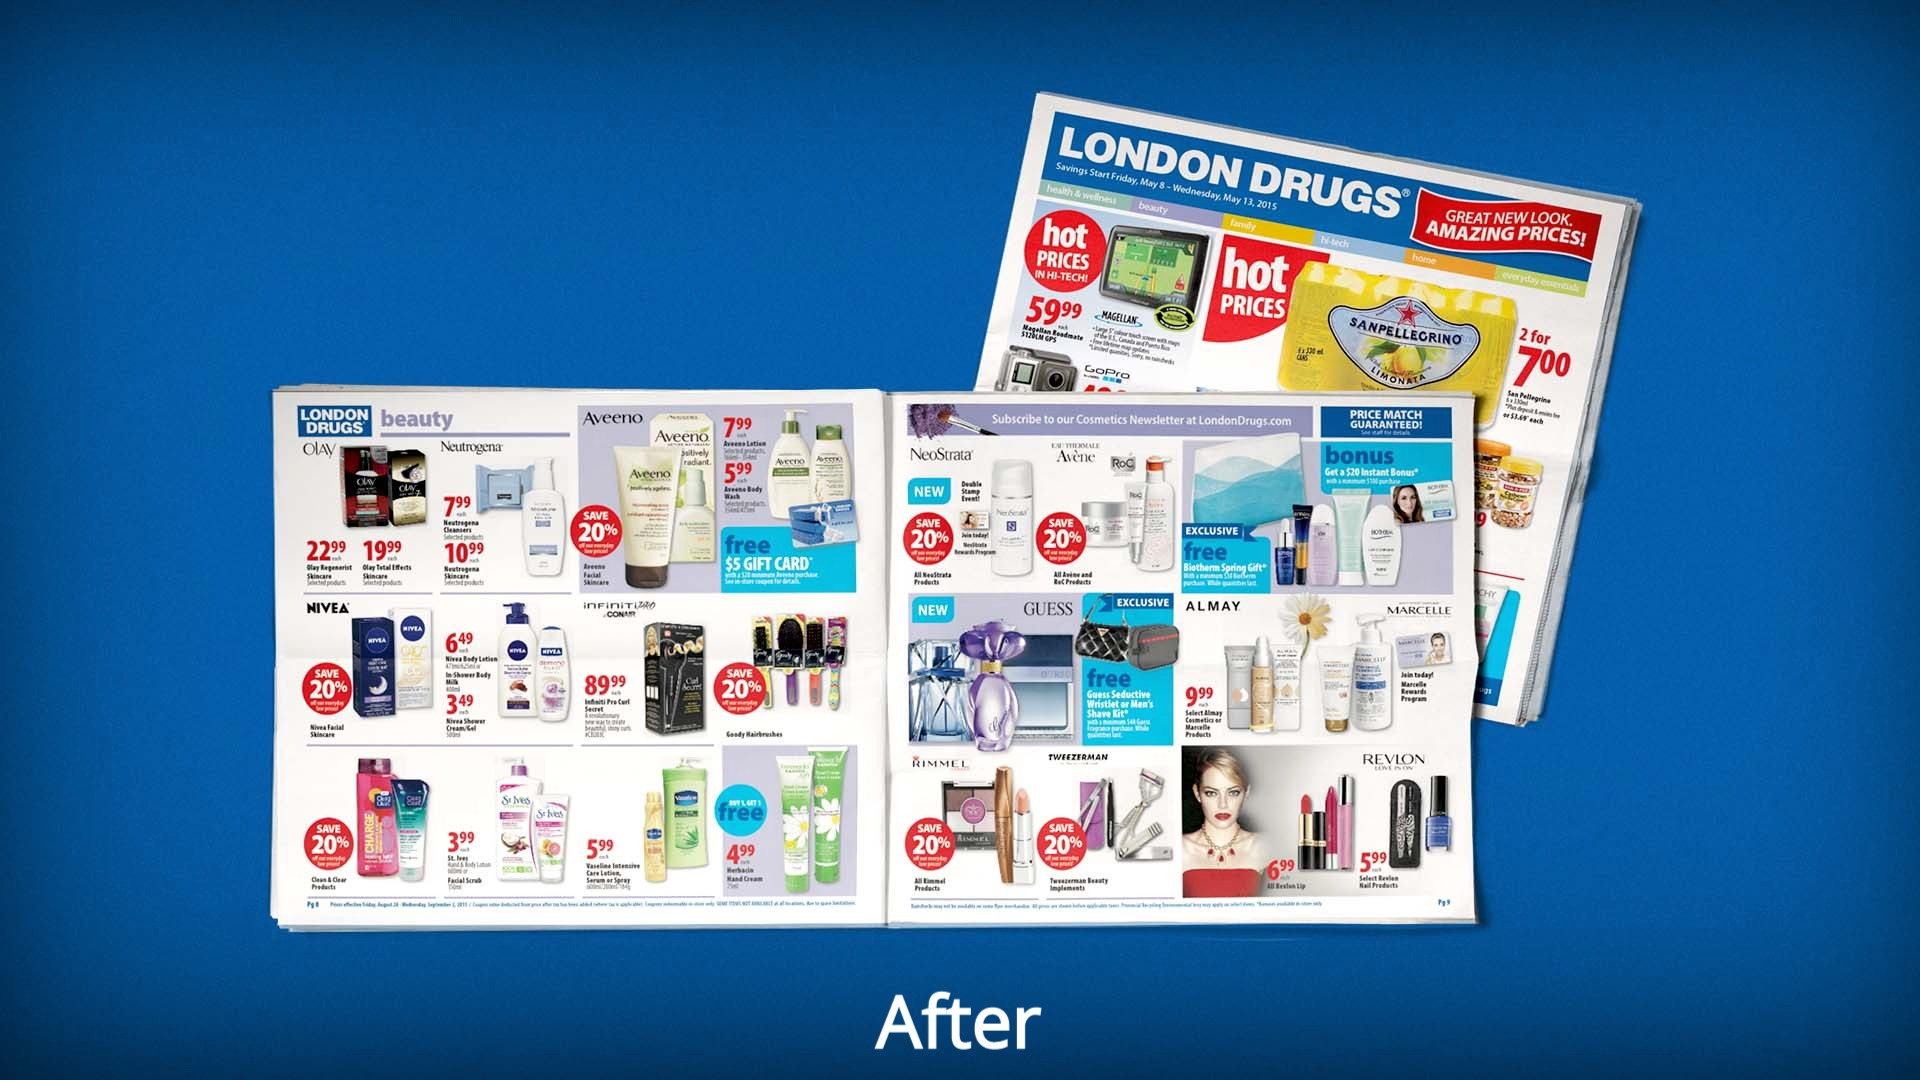 londondrugs-spead-new_edited